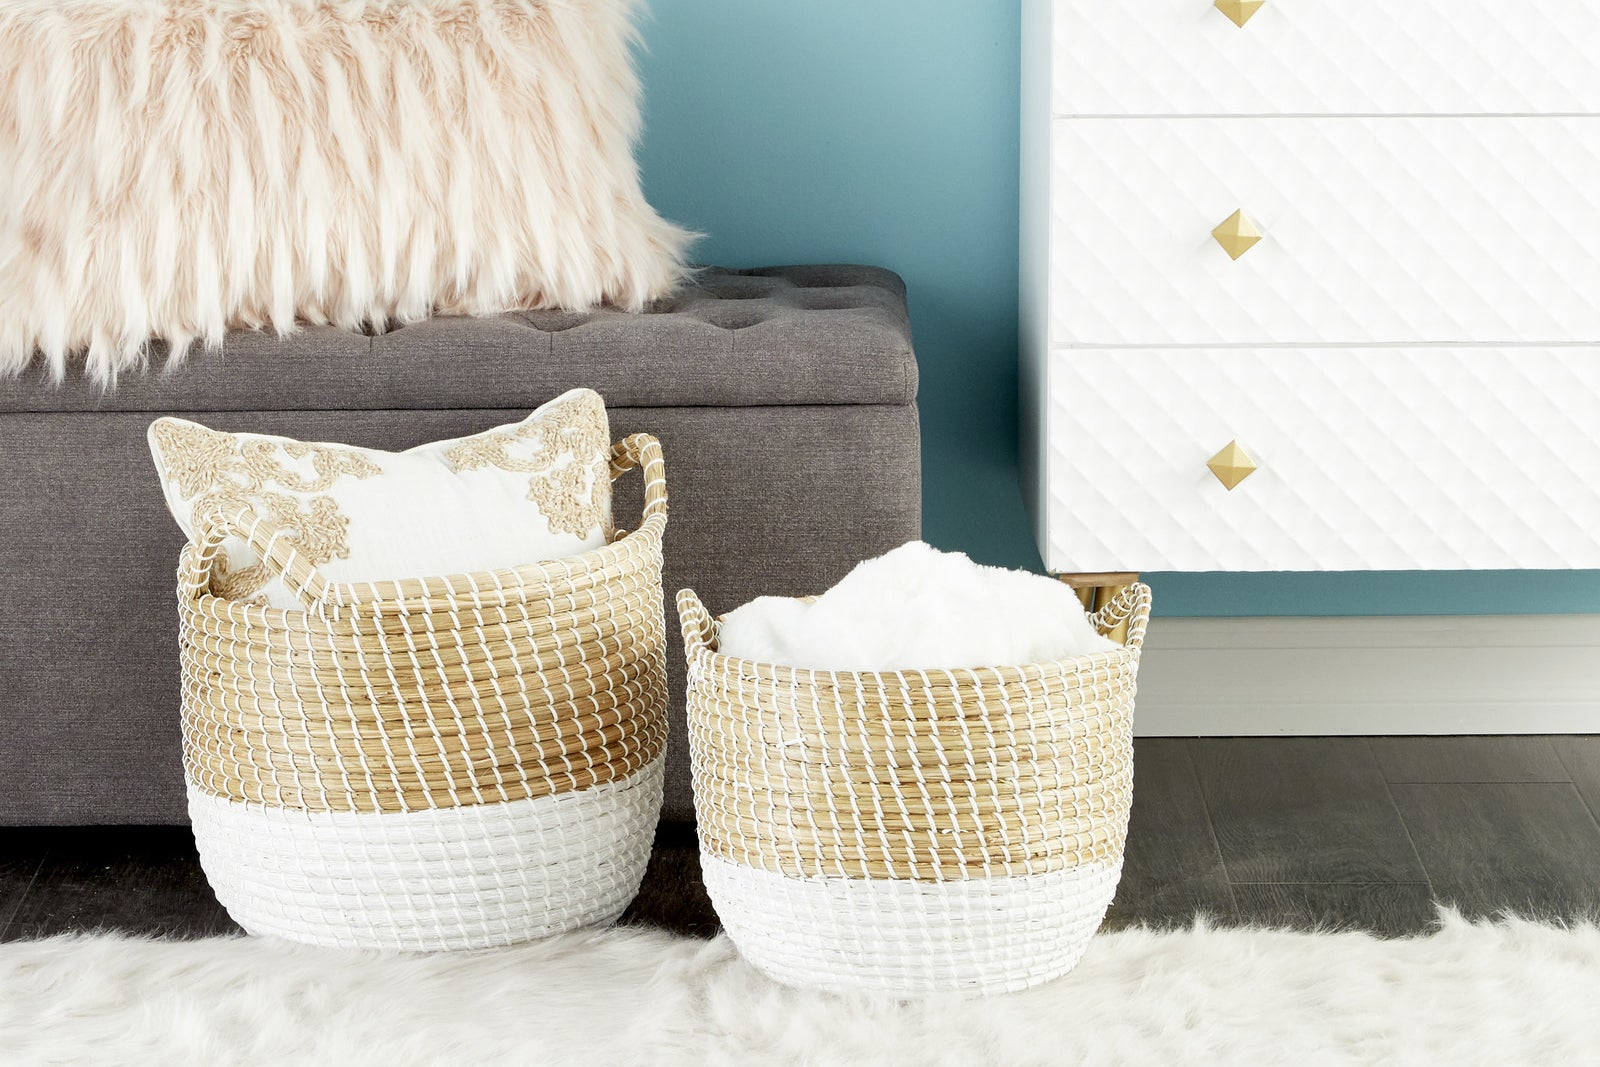 32 Pieces Of Decor From Walmart Thatd Make Any Interior Designer Proud